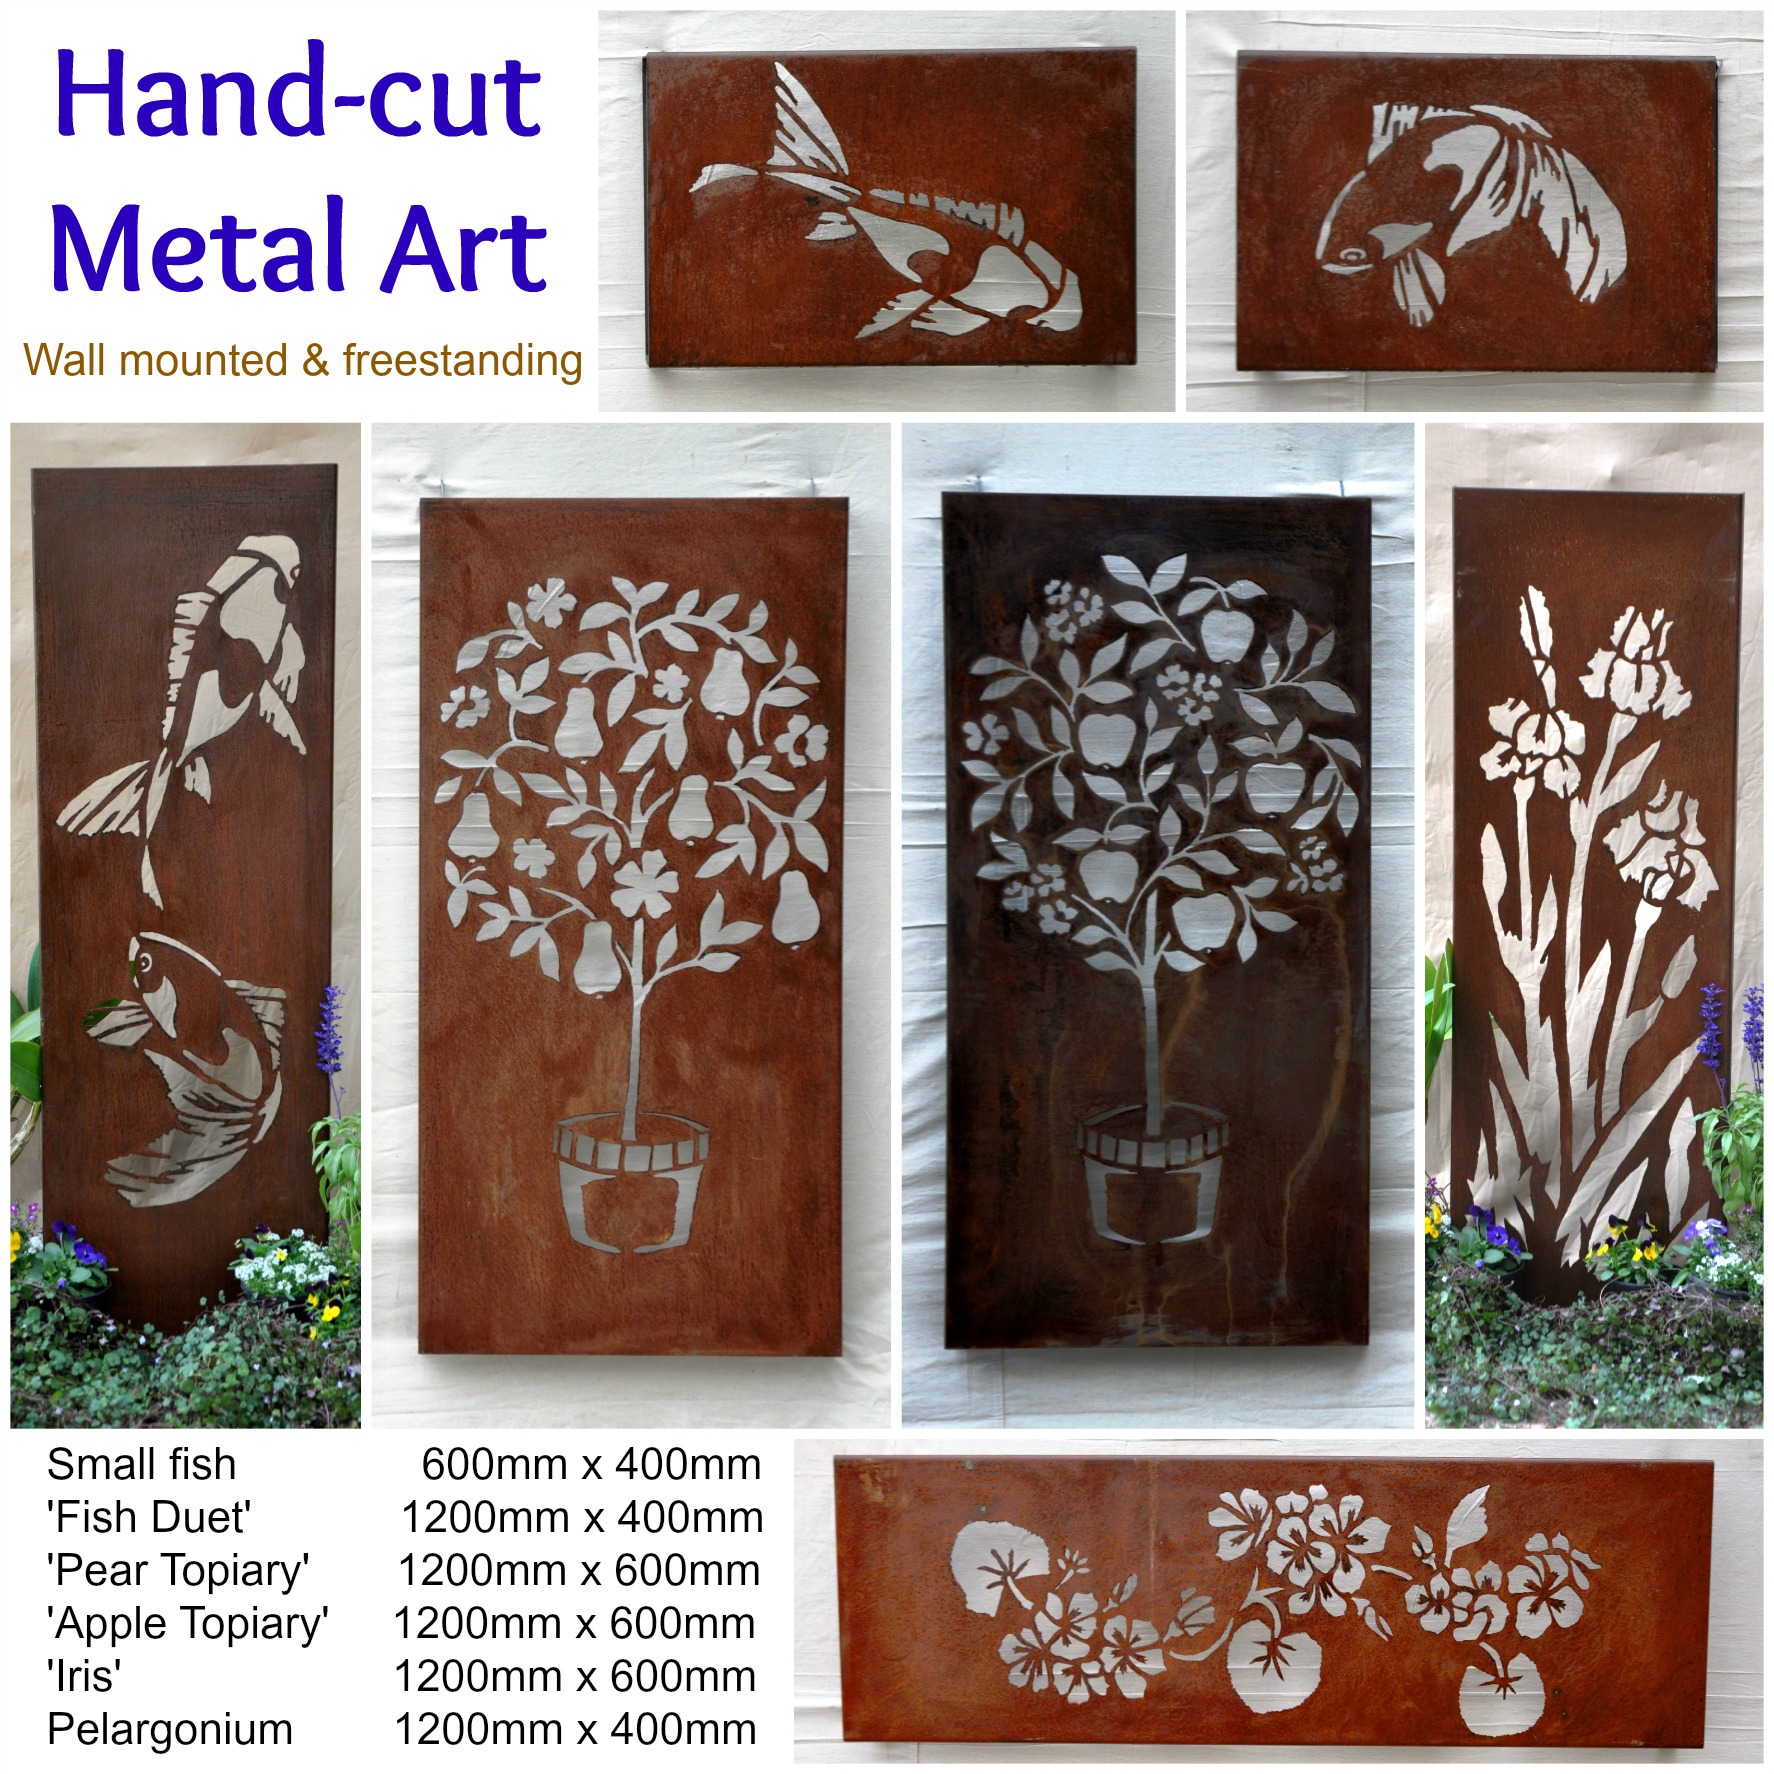 Unique hand cut metal art